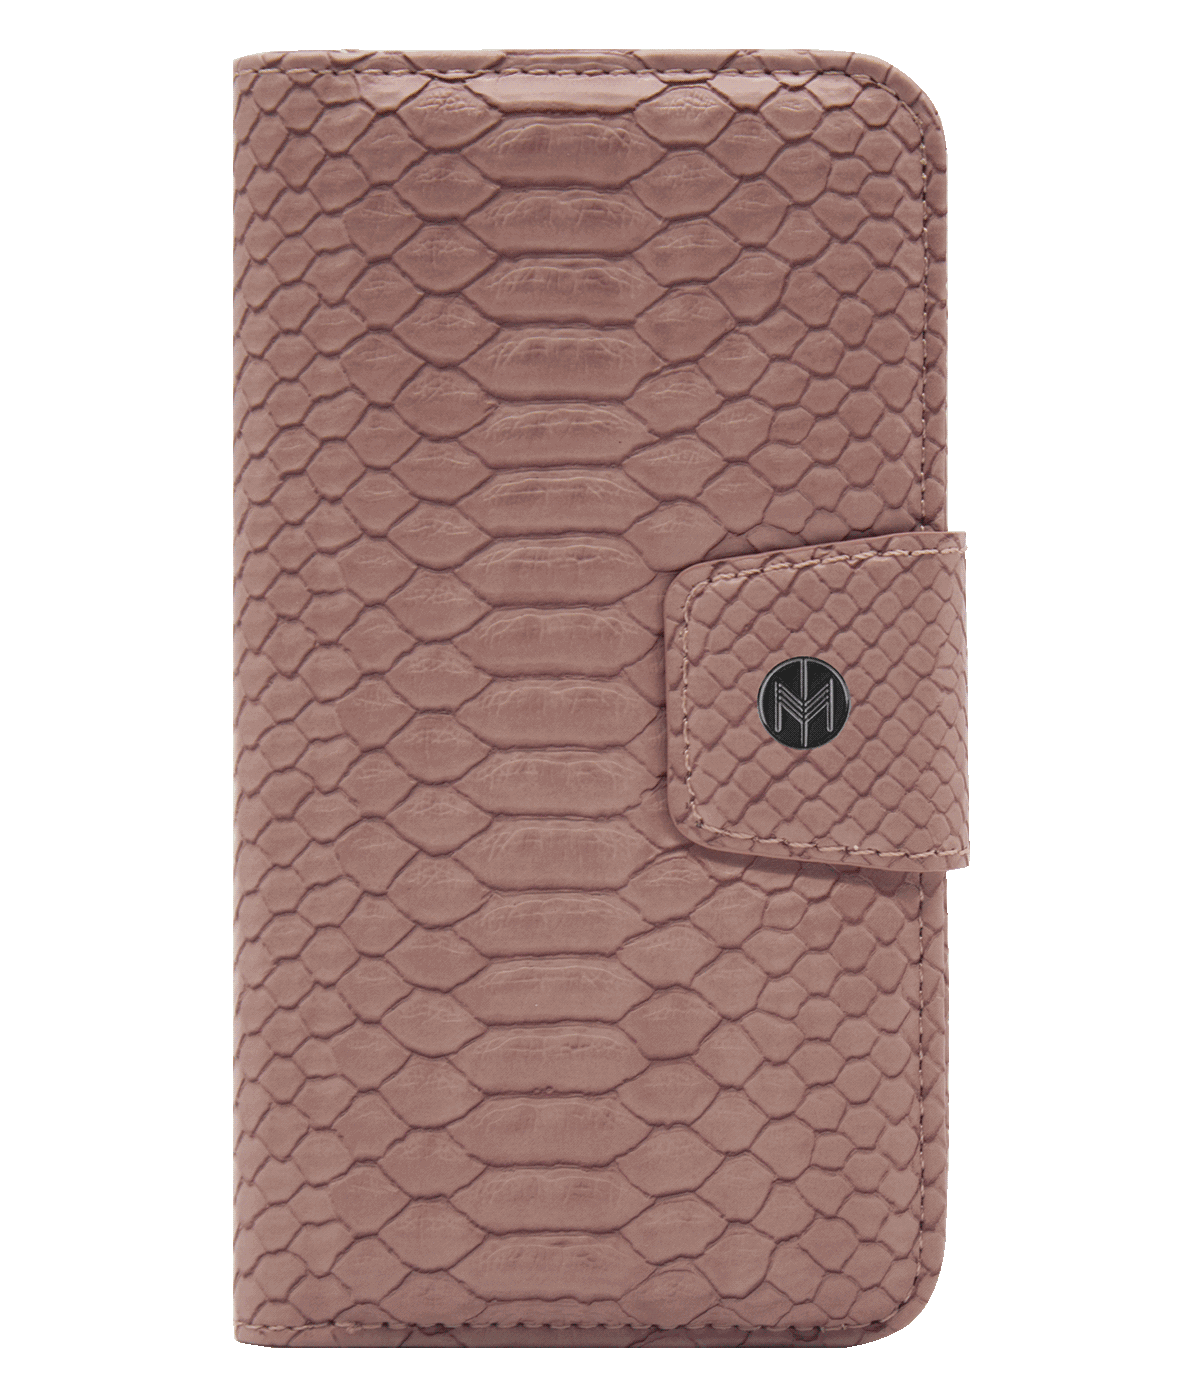 Marvêlle · N°301 · Ash Pink Reptile